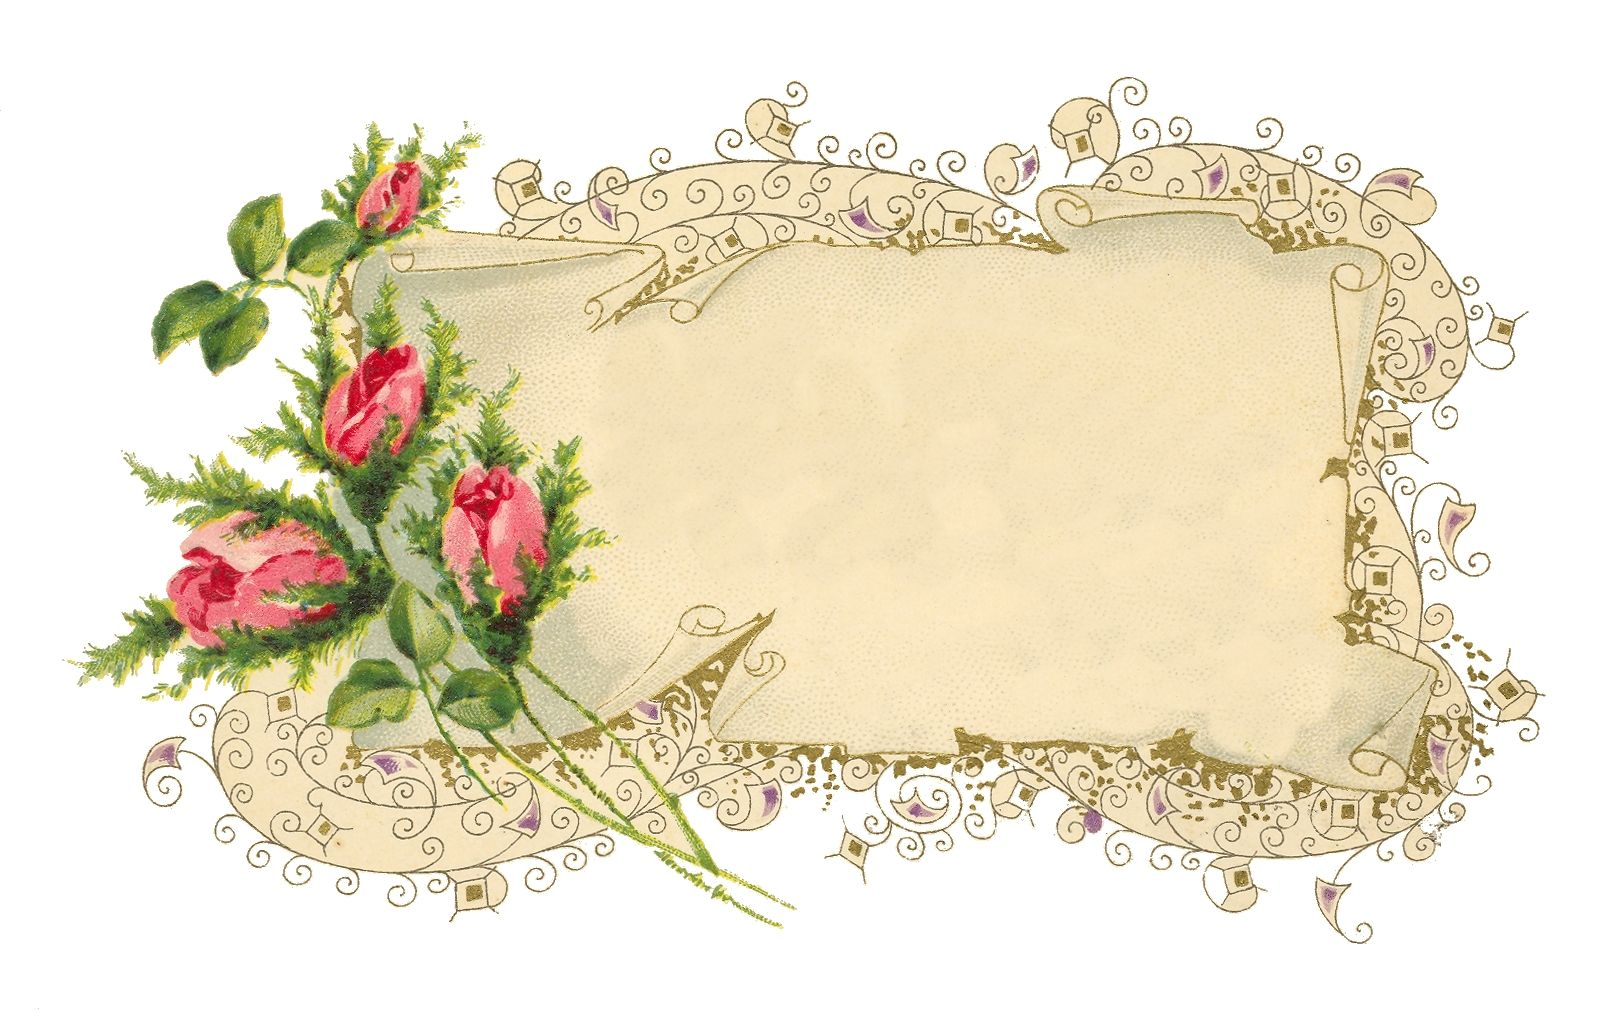 Victorian Scroll Pink Roses 1619x1033 Free Collection Of Images Clip Art Vintage Items To Freely Use In Arts Clip Art Vintage Vintage Cards Vintage Collage